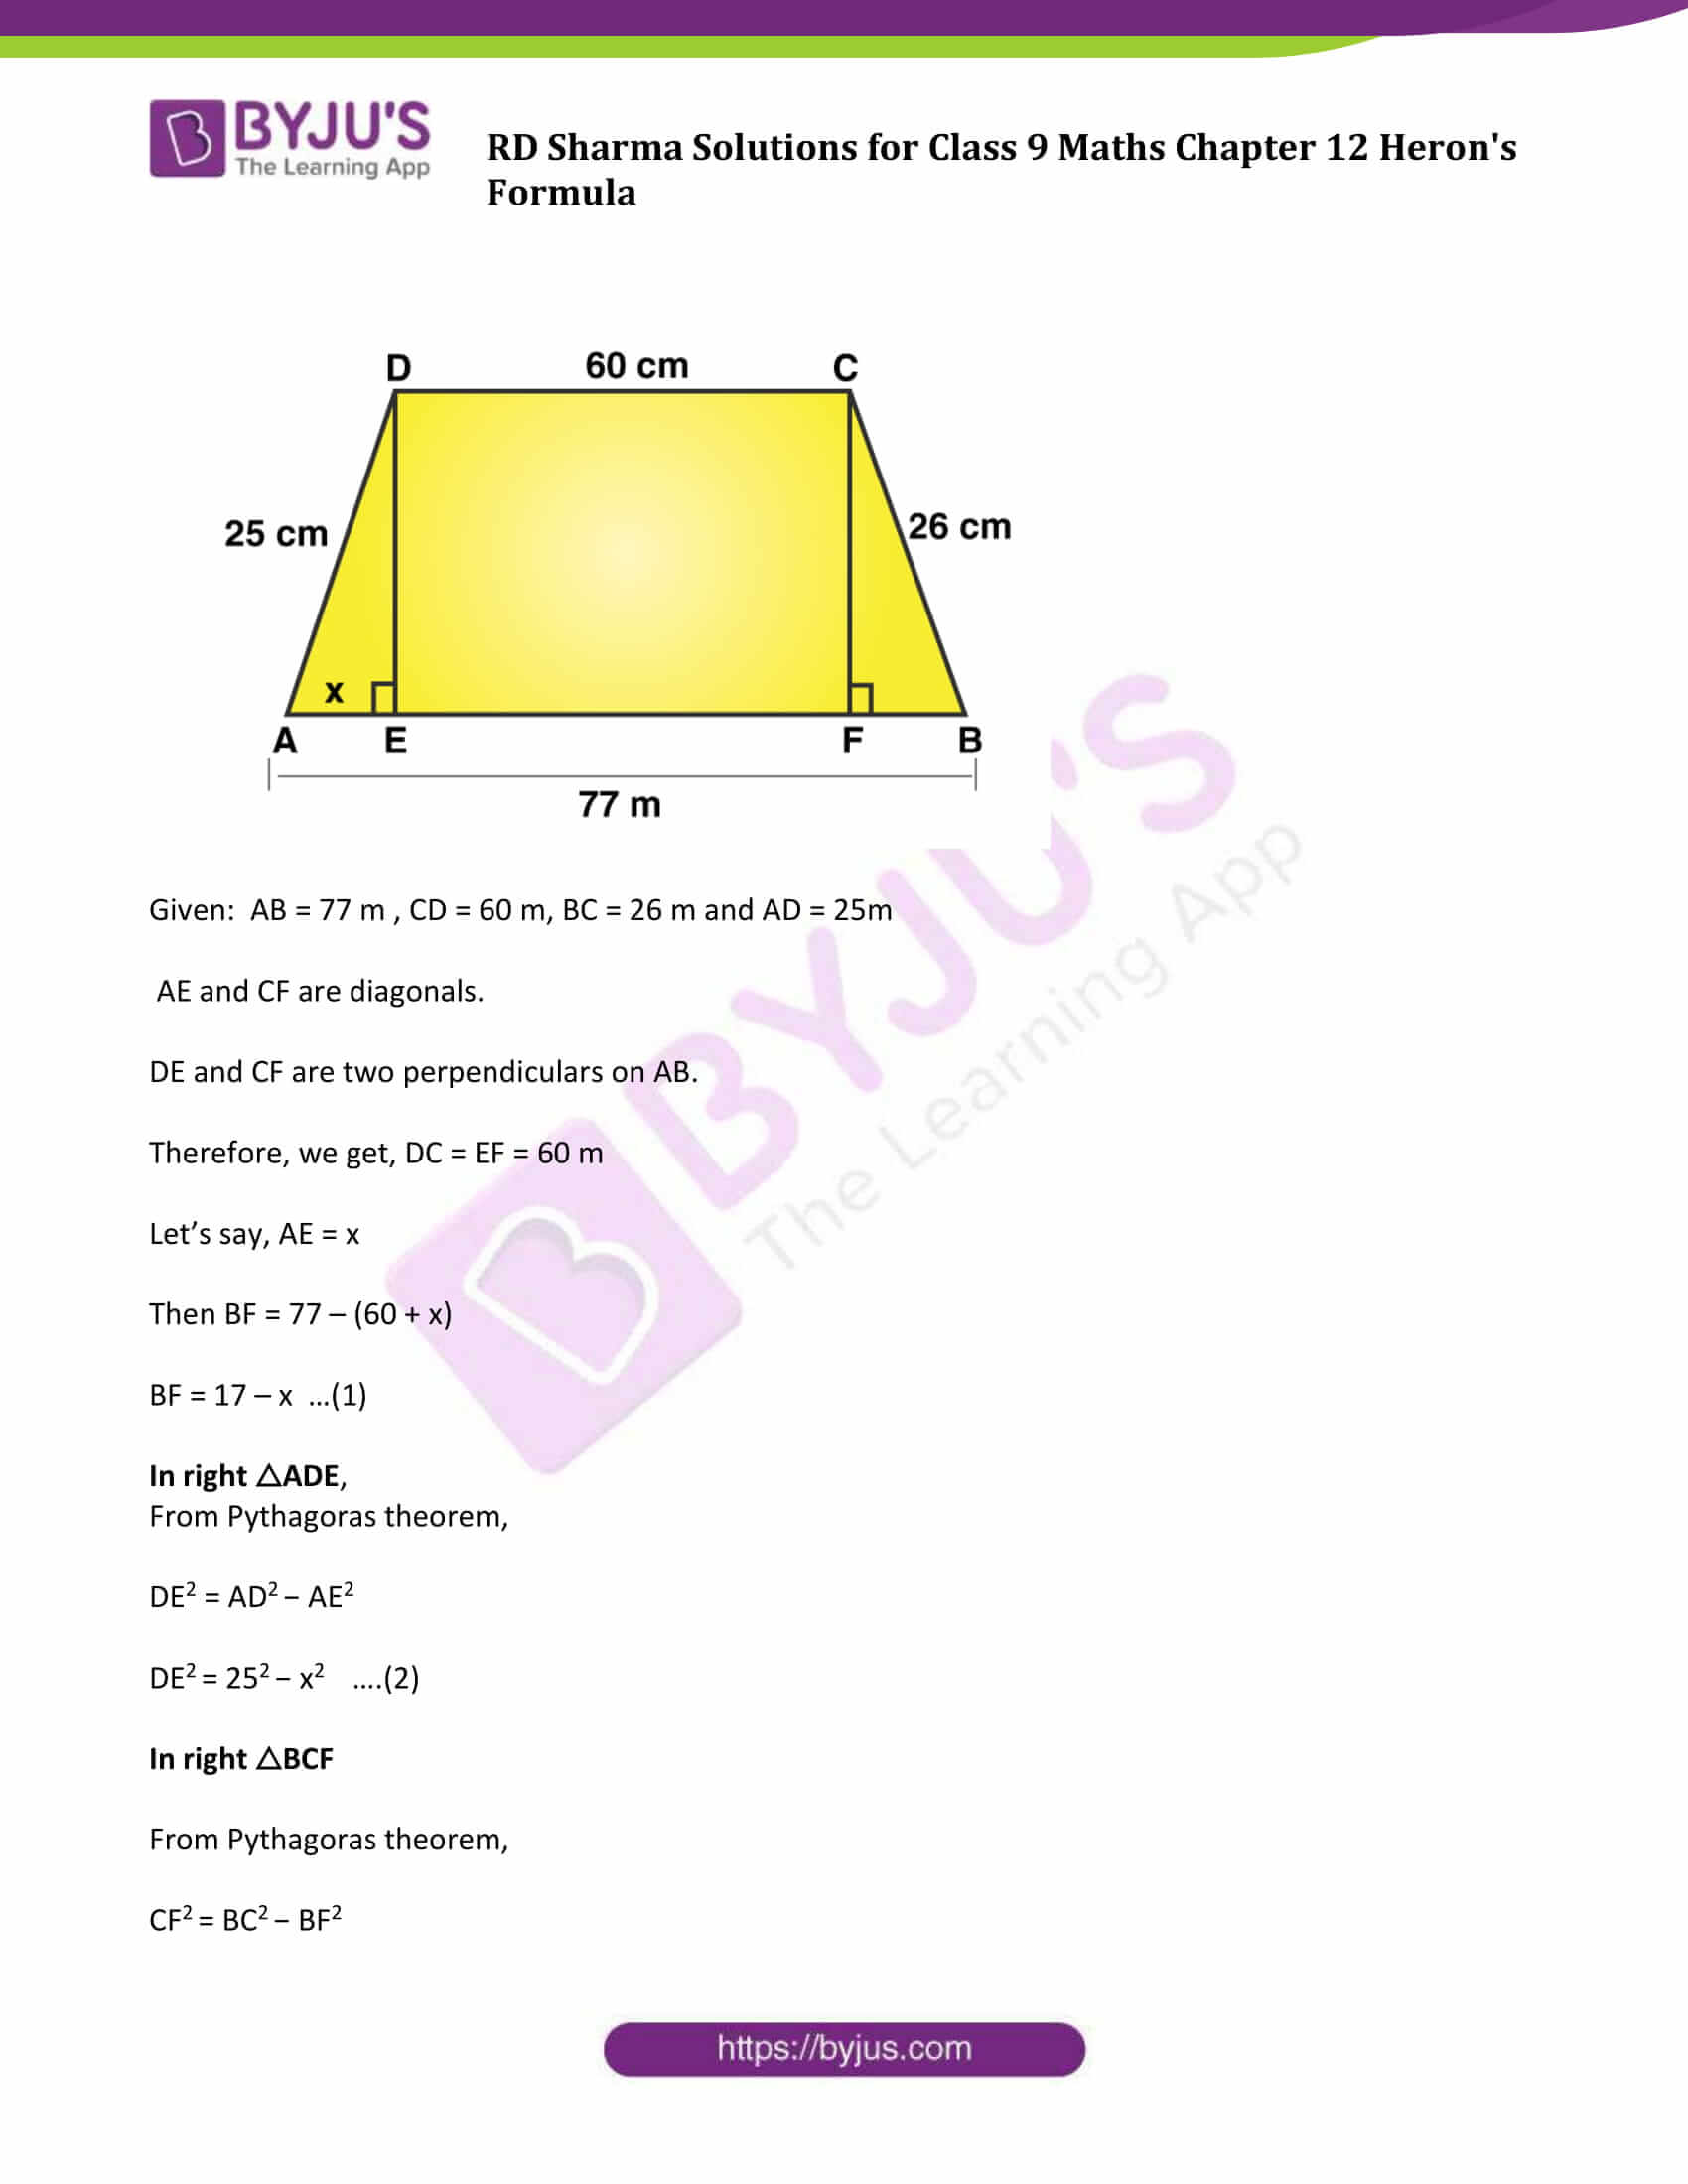 RD Sharma Solution Class 9 Maths Chapter 12 Herons Formula 14